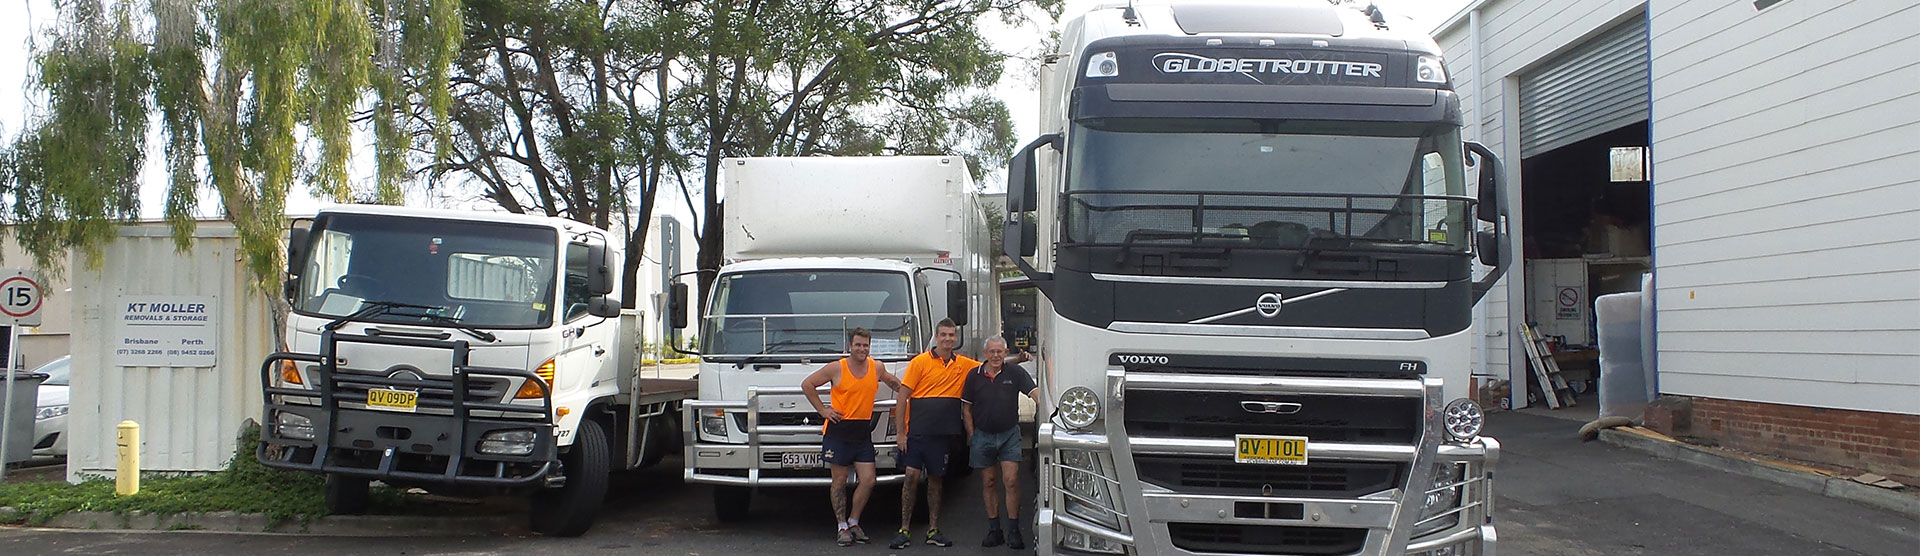 HIGHLY EXPERIENCED INTERSTATE REMOVALS TEAM